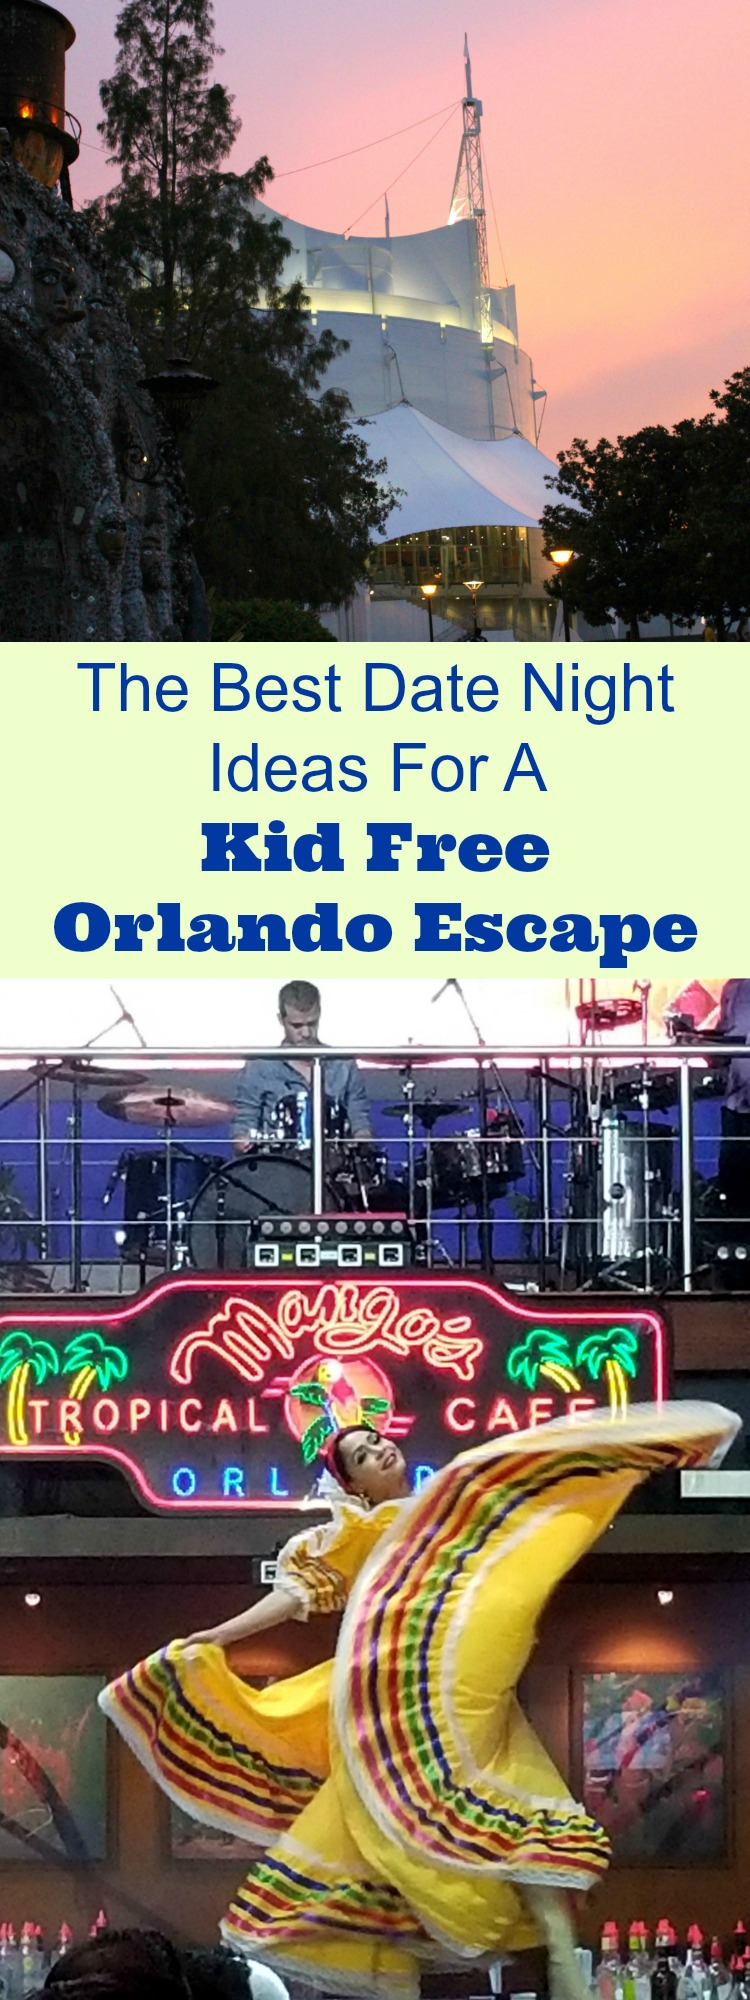 kid-free orlando | date nights in orlando fl | travelingmom